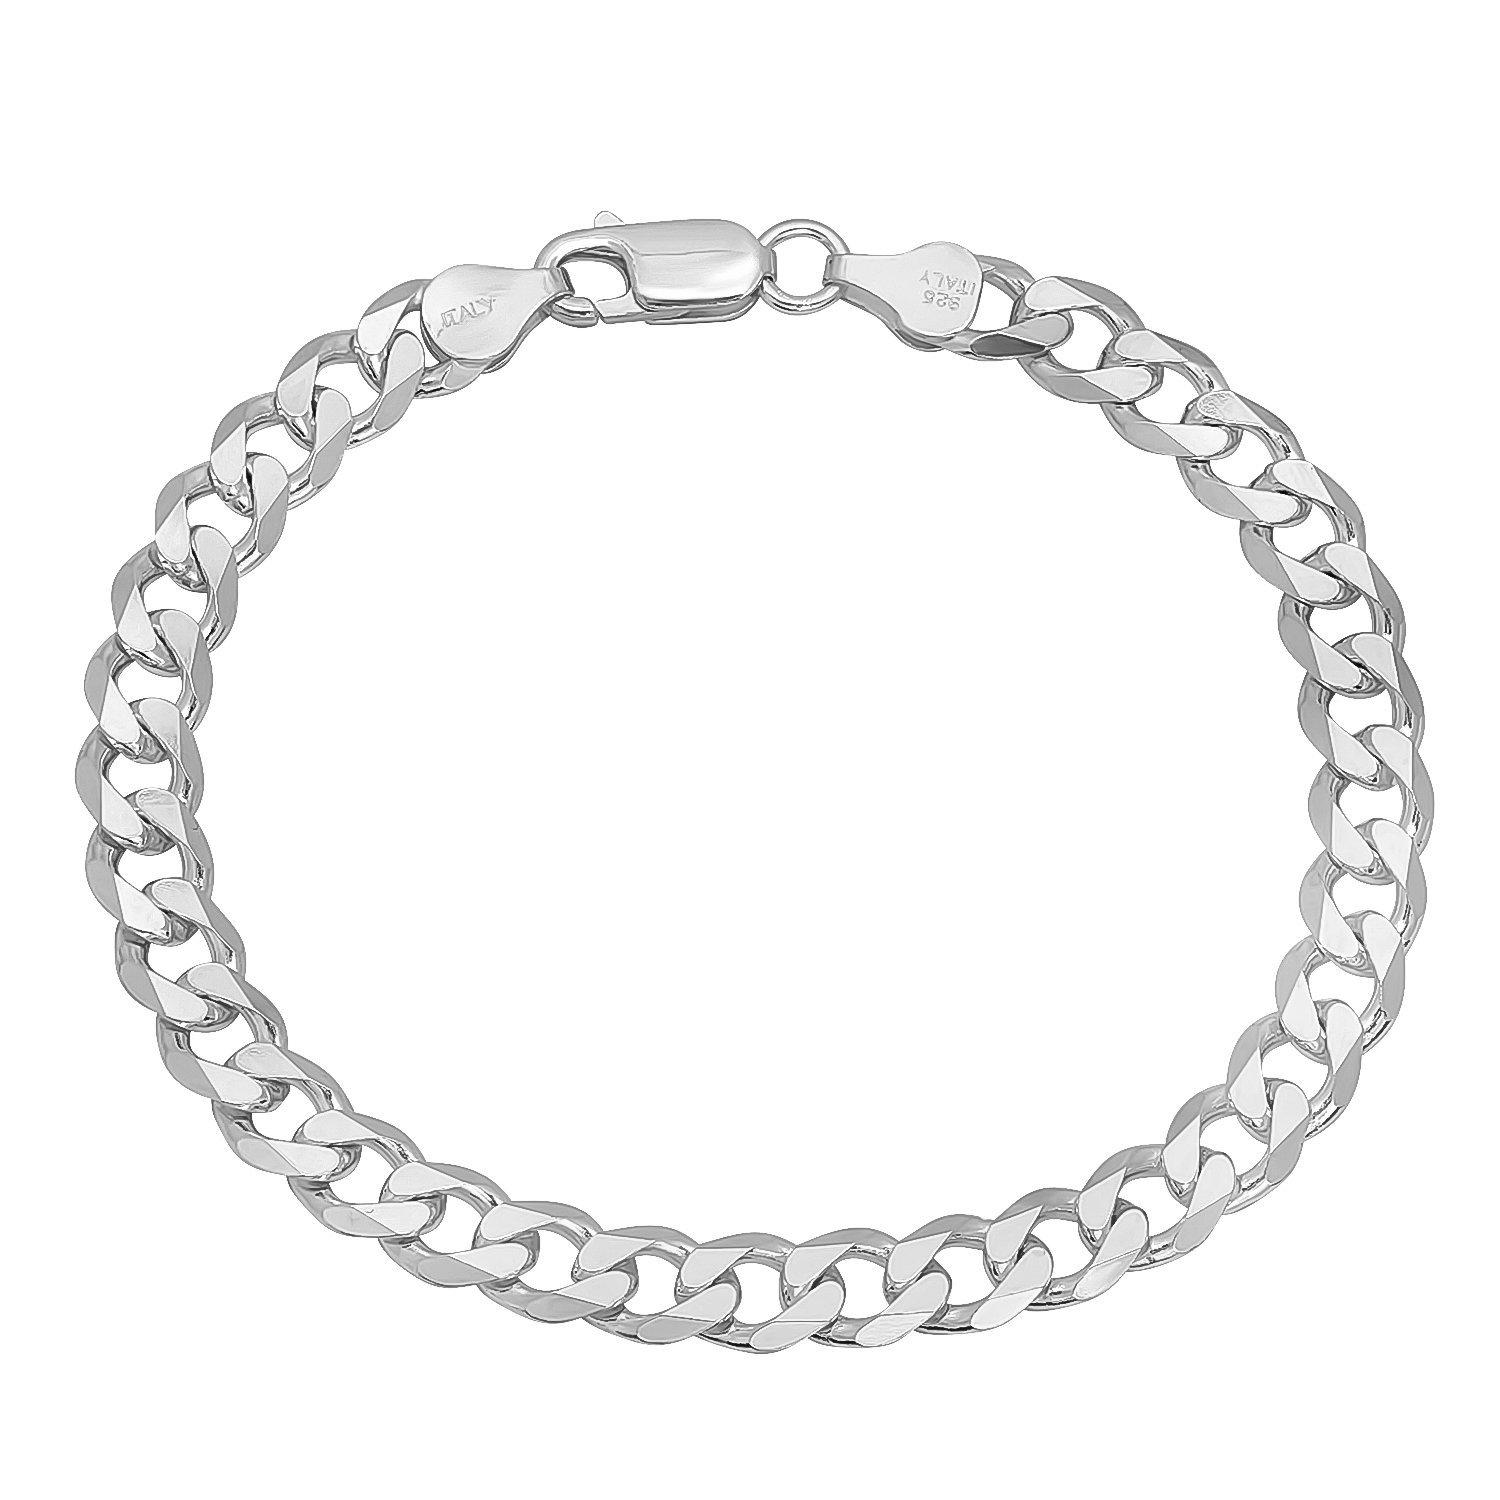 Italian 6.5mm 925 Sterling Silver Nickel-Free Beveled Cuban Curb Link Bracelet, 7'' + Cleaning Cloth by The Bling Factory (Image #2)